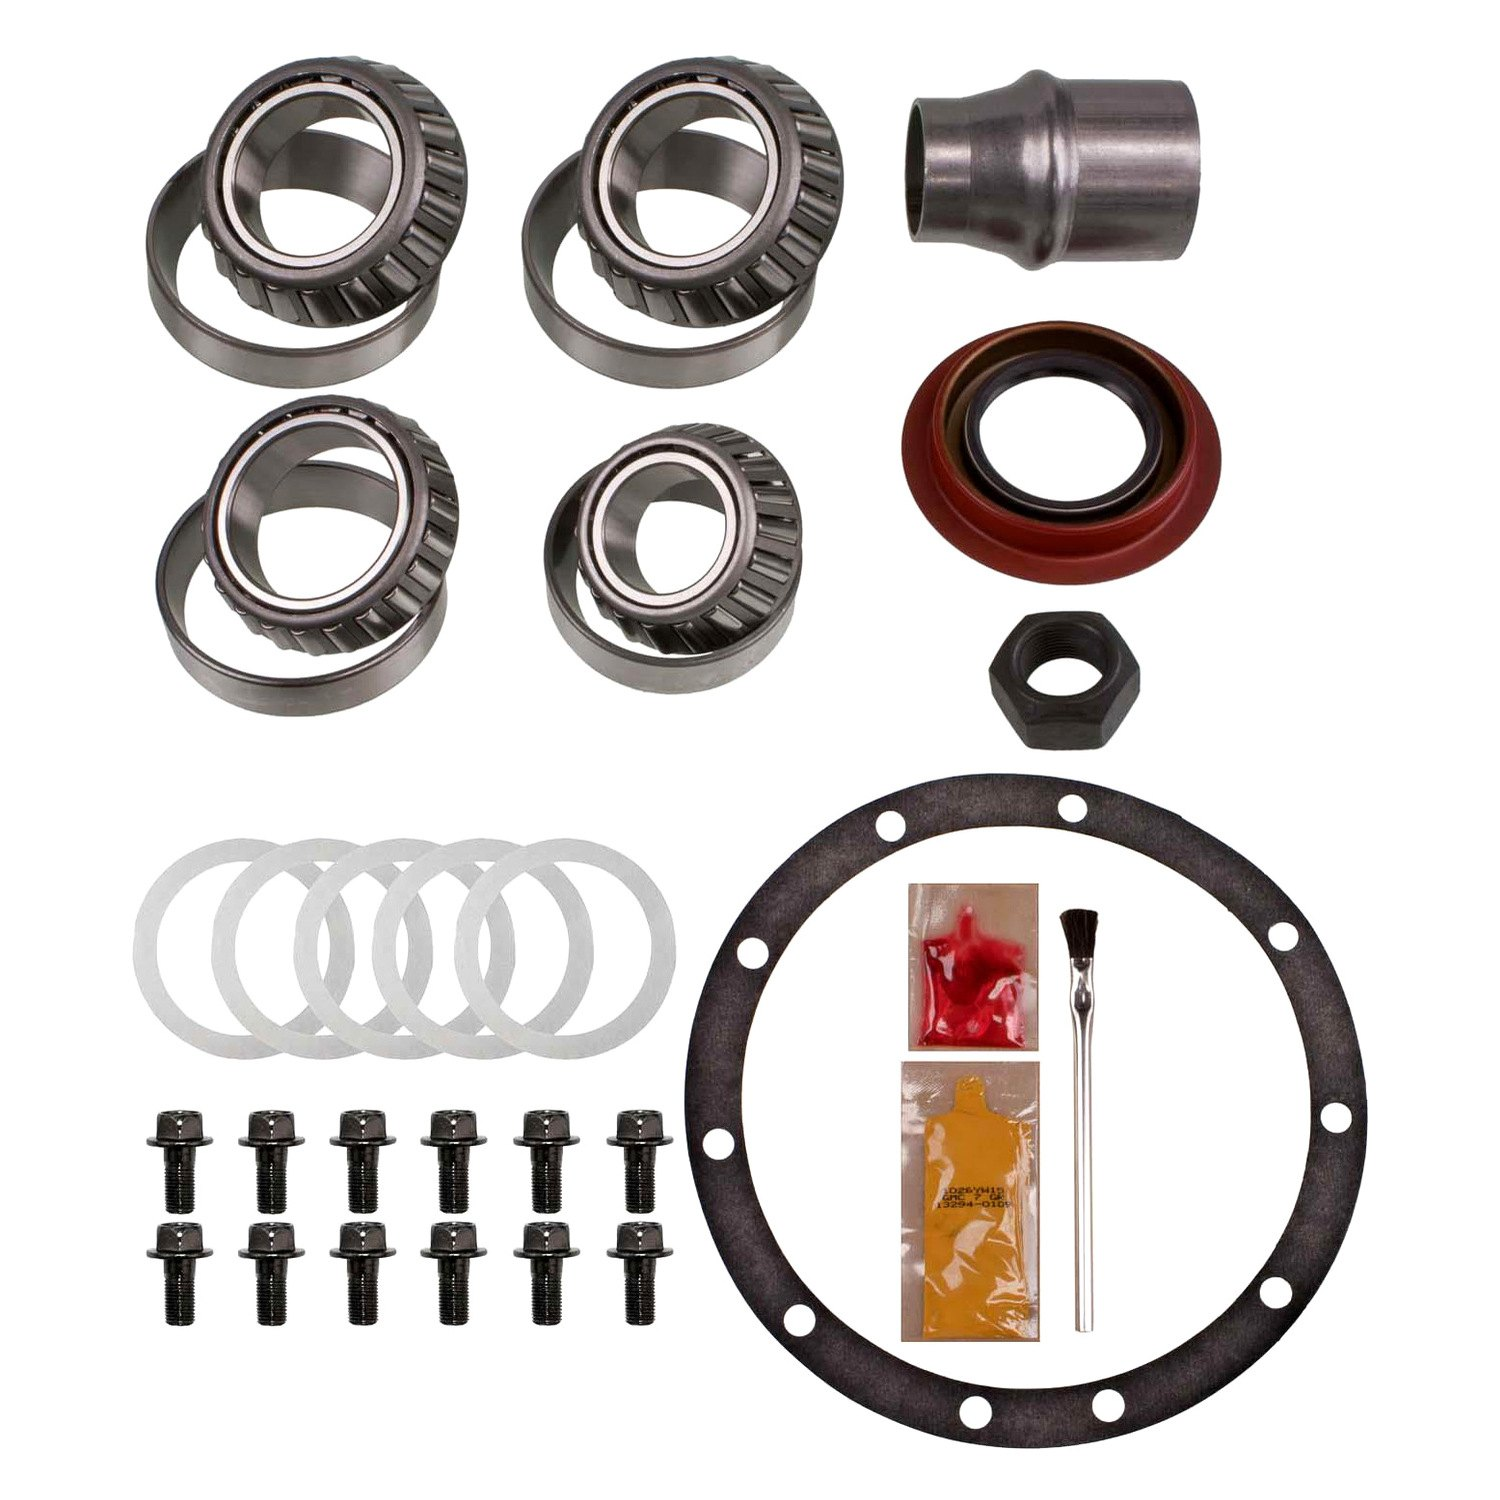 Motive Gear Dodge Charger 1969 Differential Master Bearing Kit Rear With Premium Timken